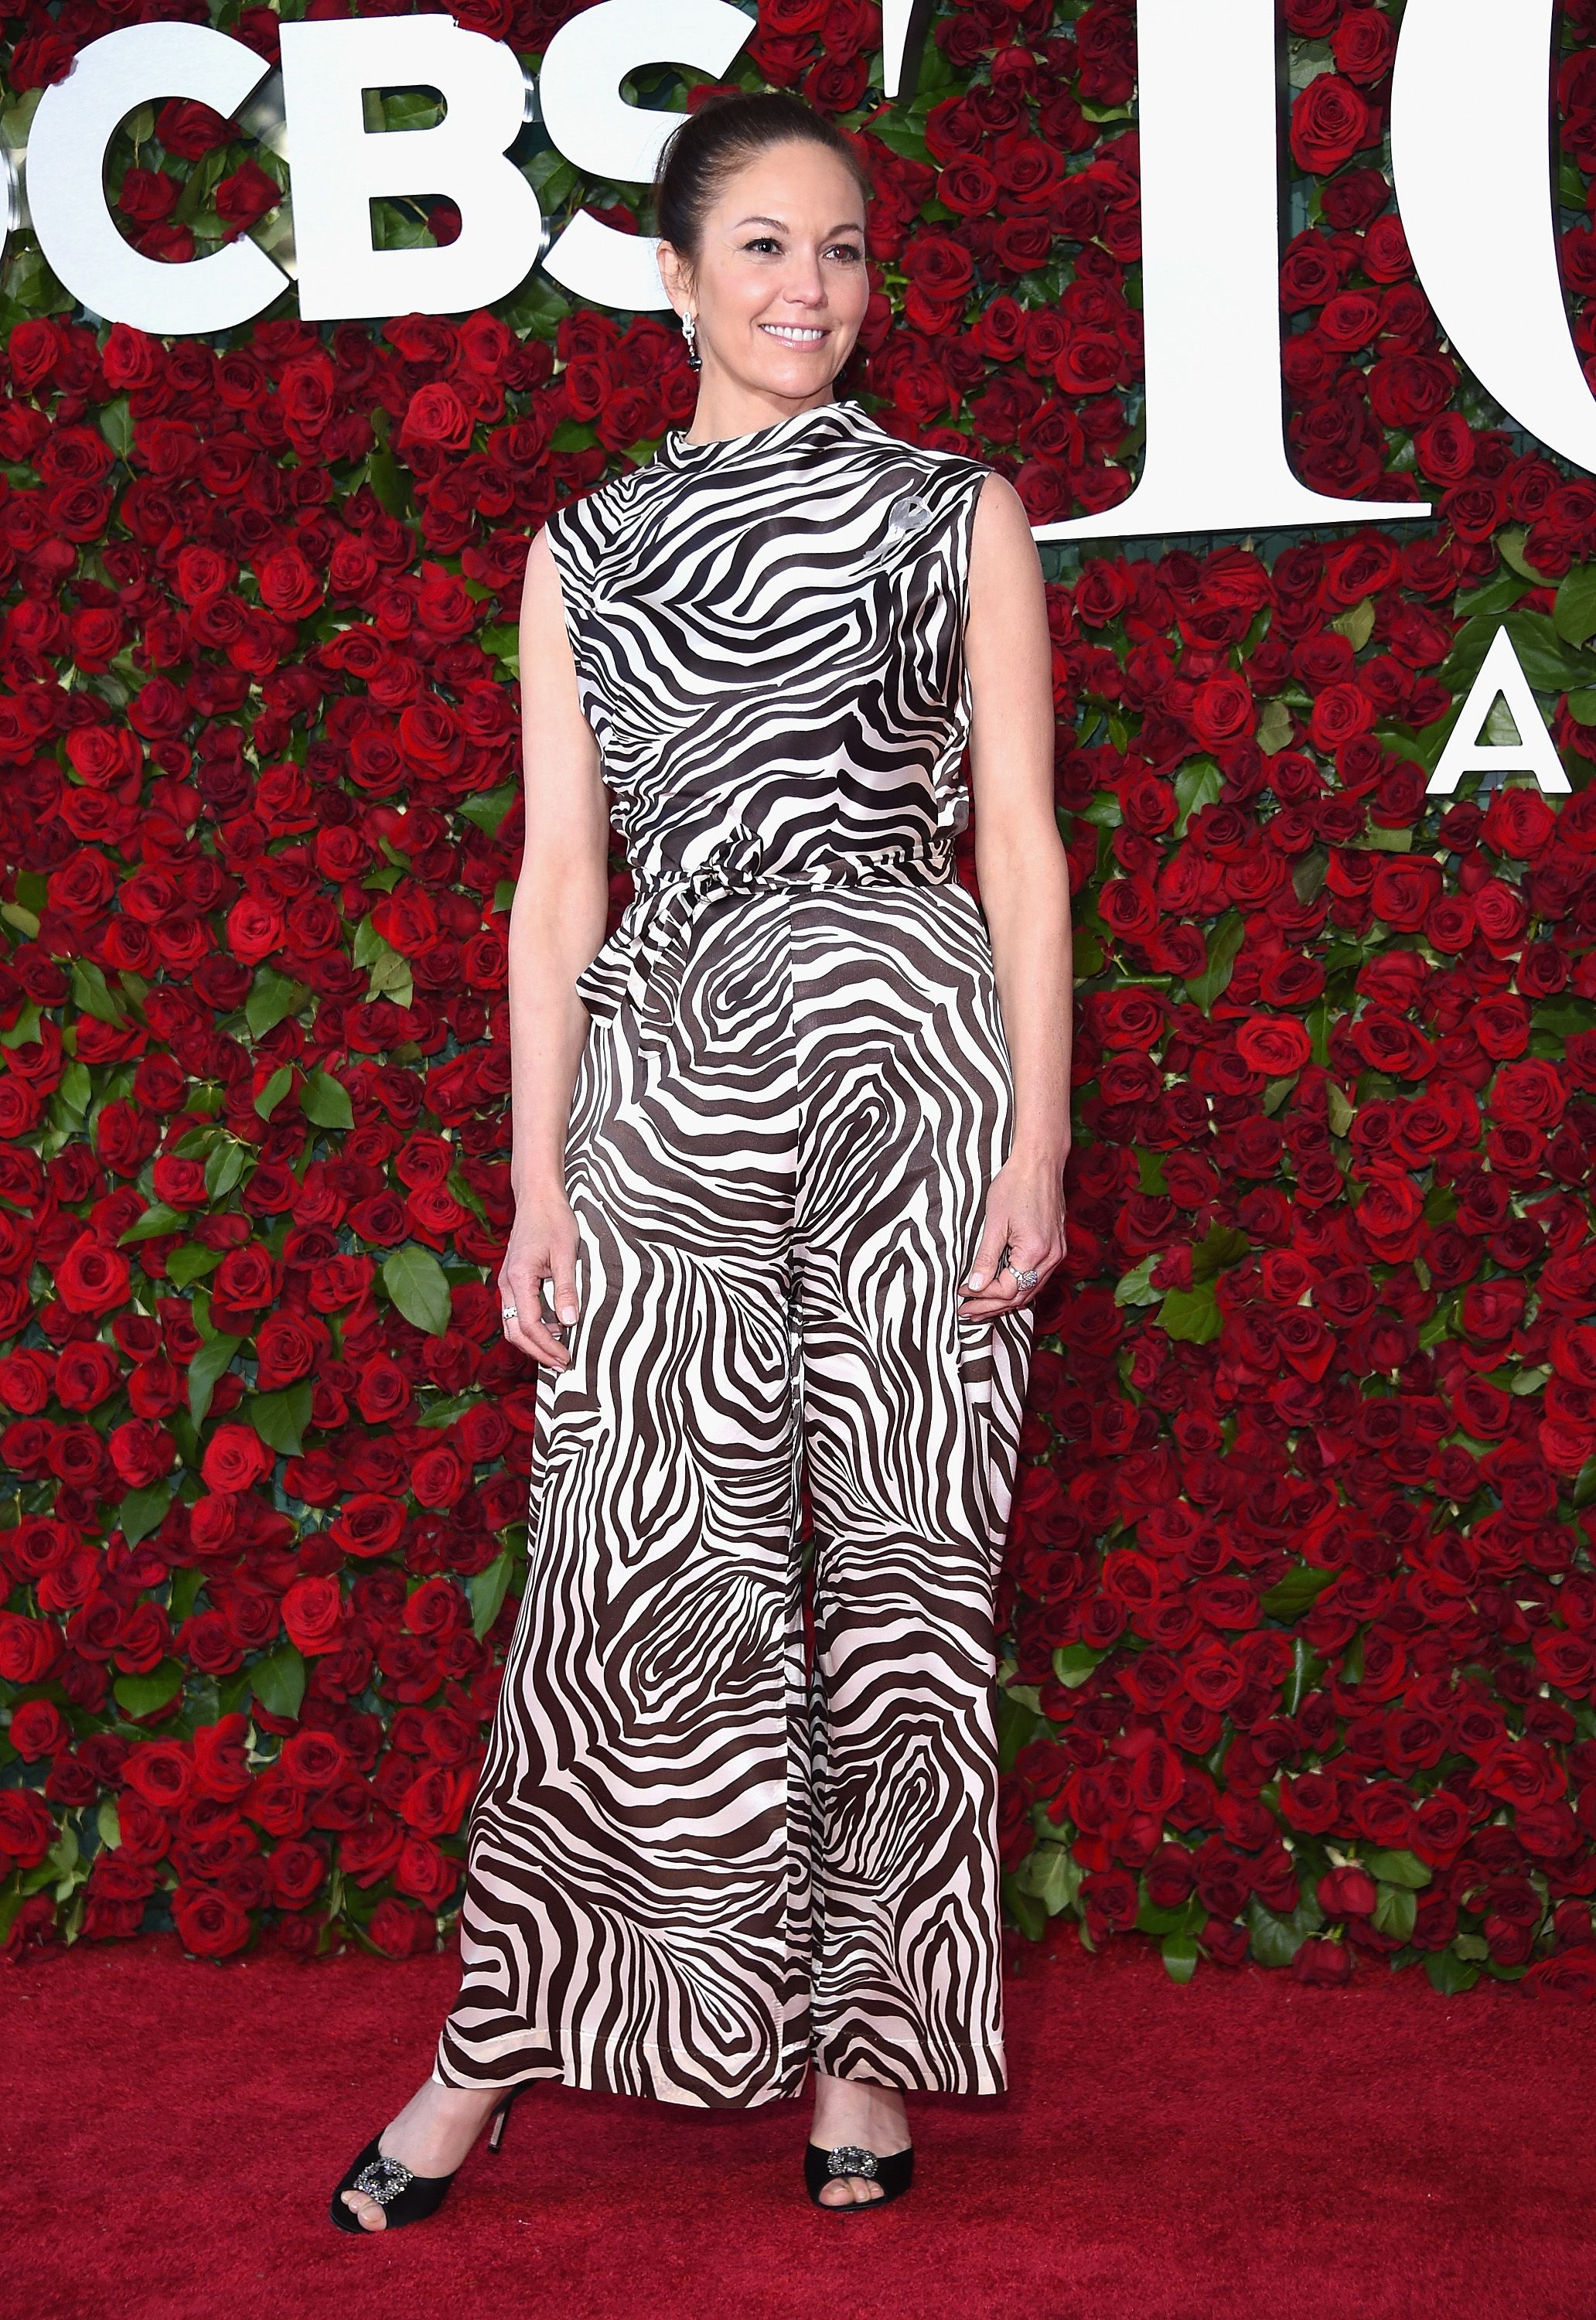 The Best Dressed from the 2016 Tony Awards